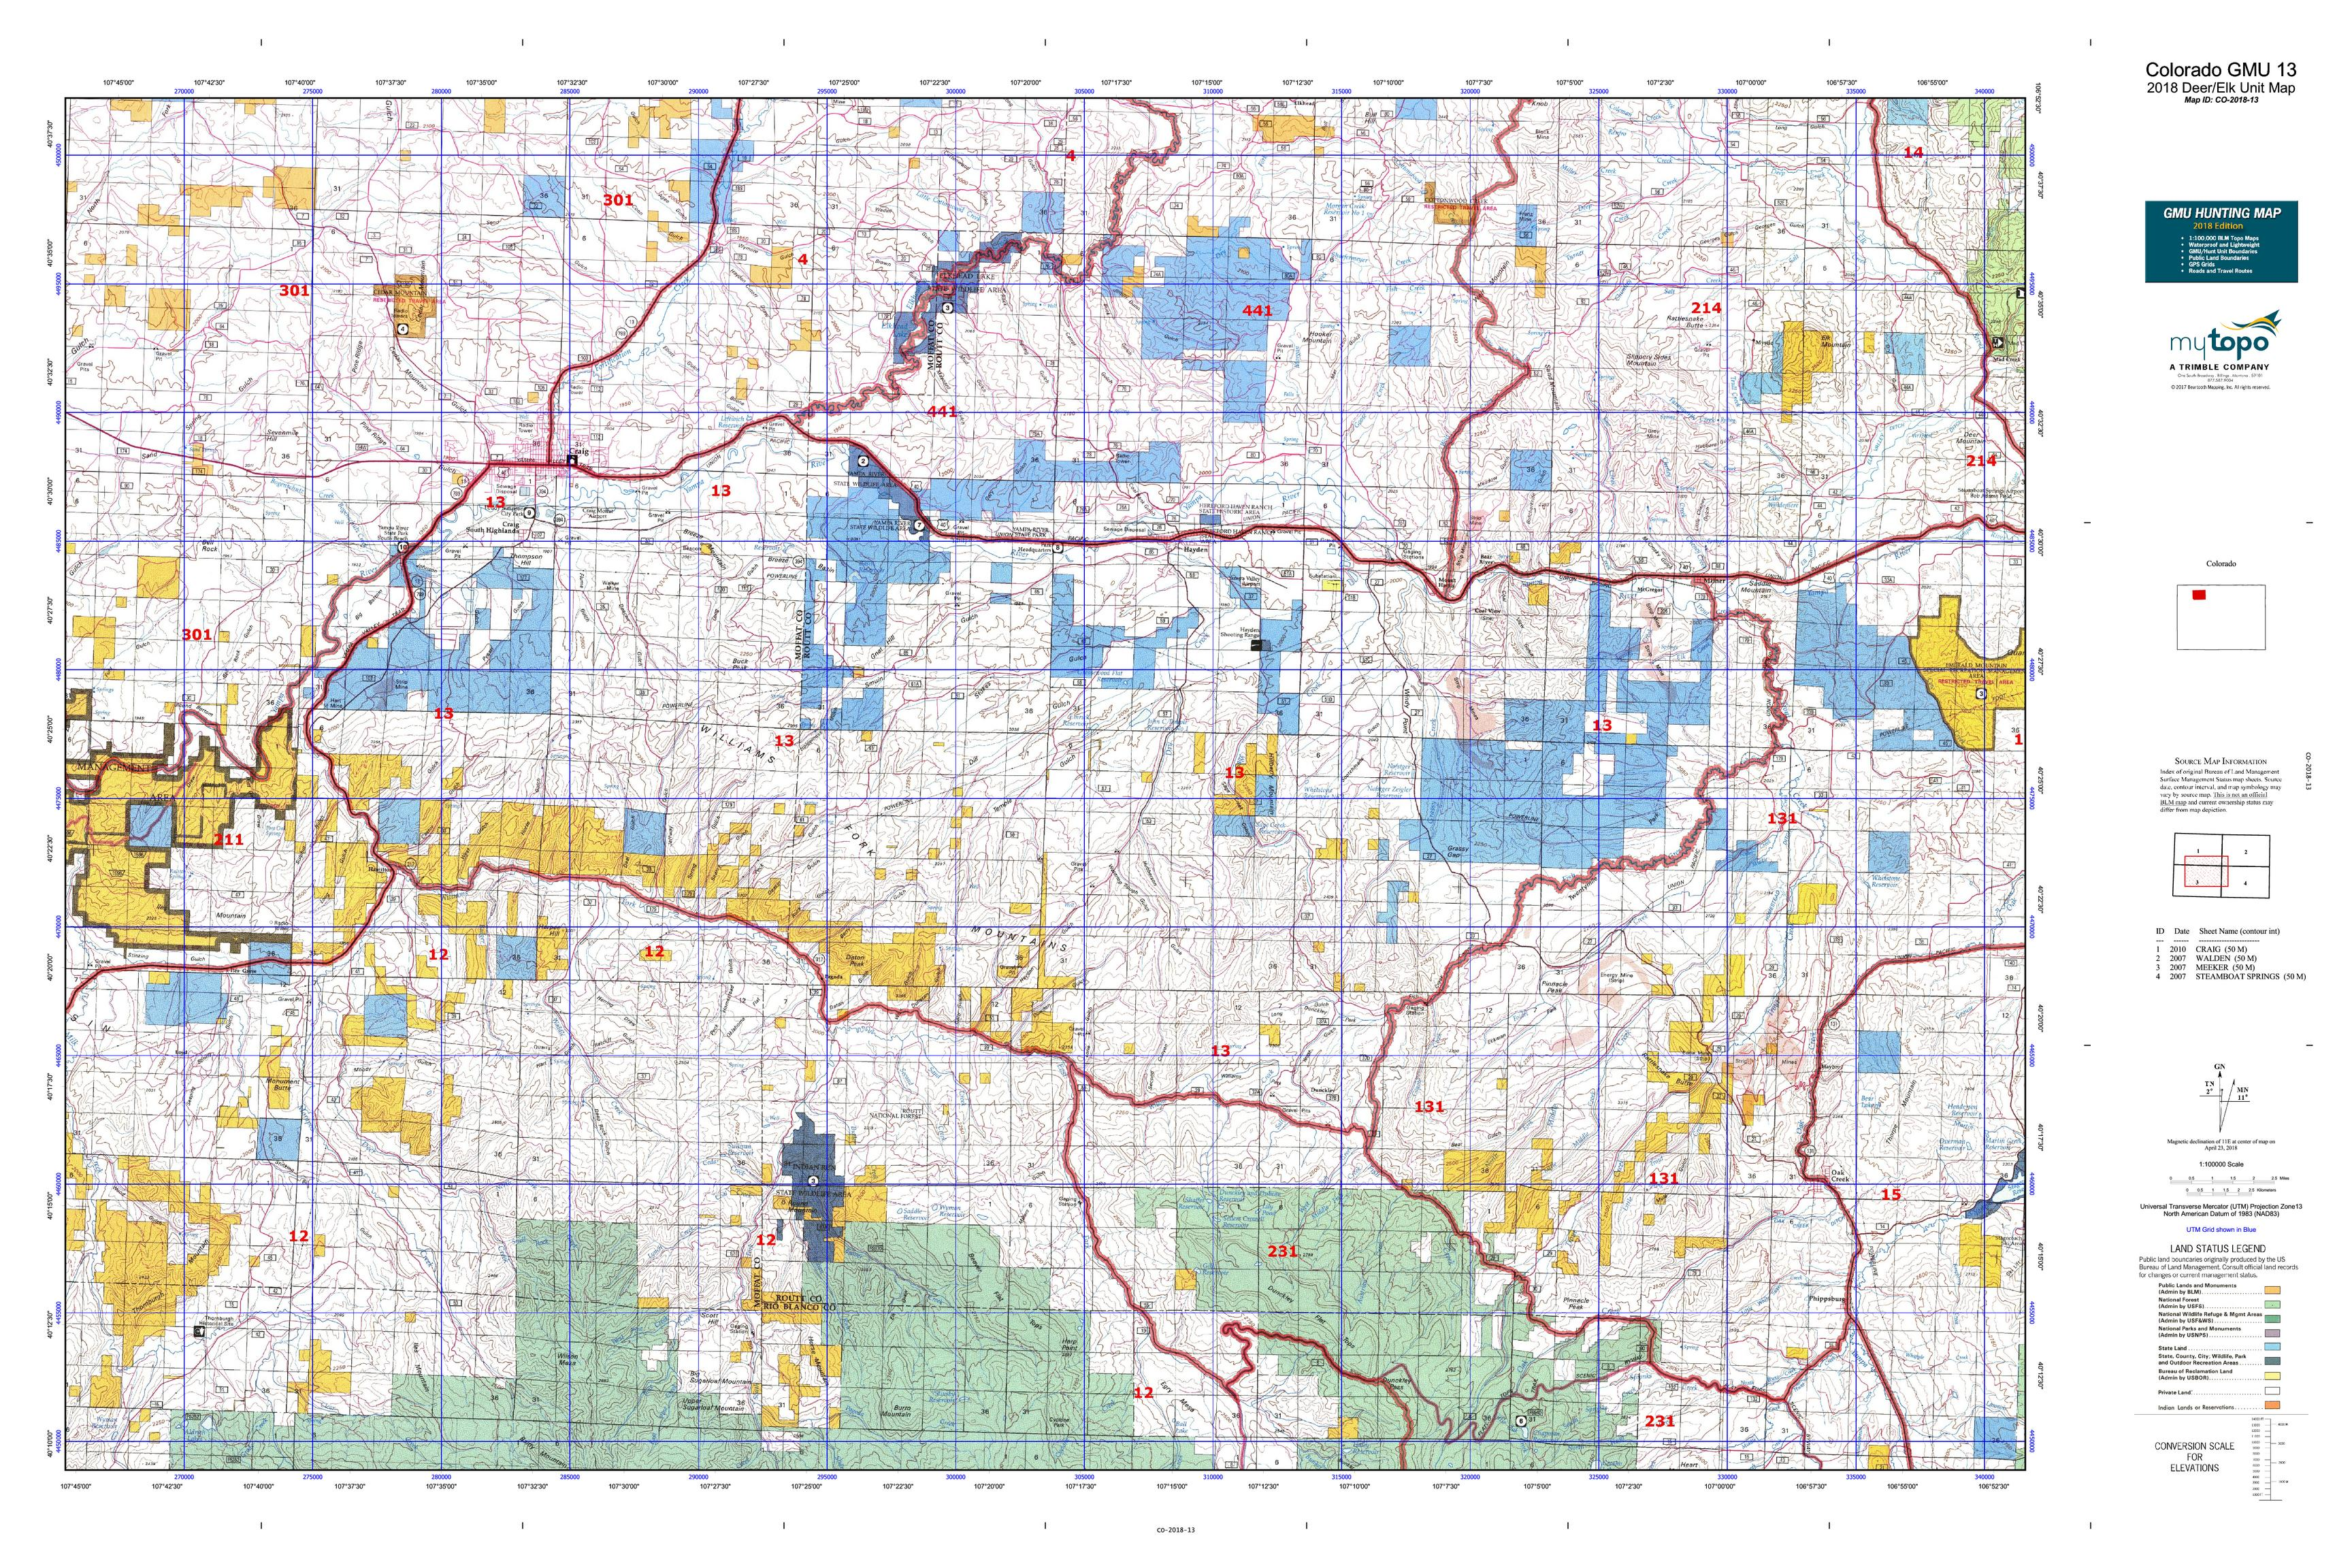 Colorado GMU 13 Map | MyTopo